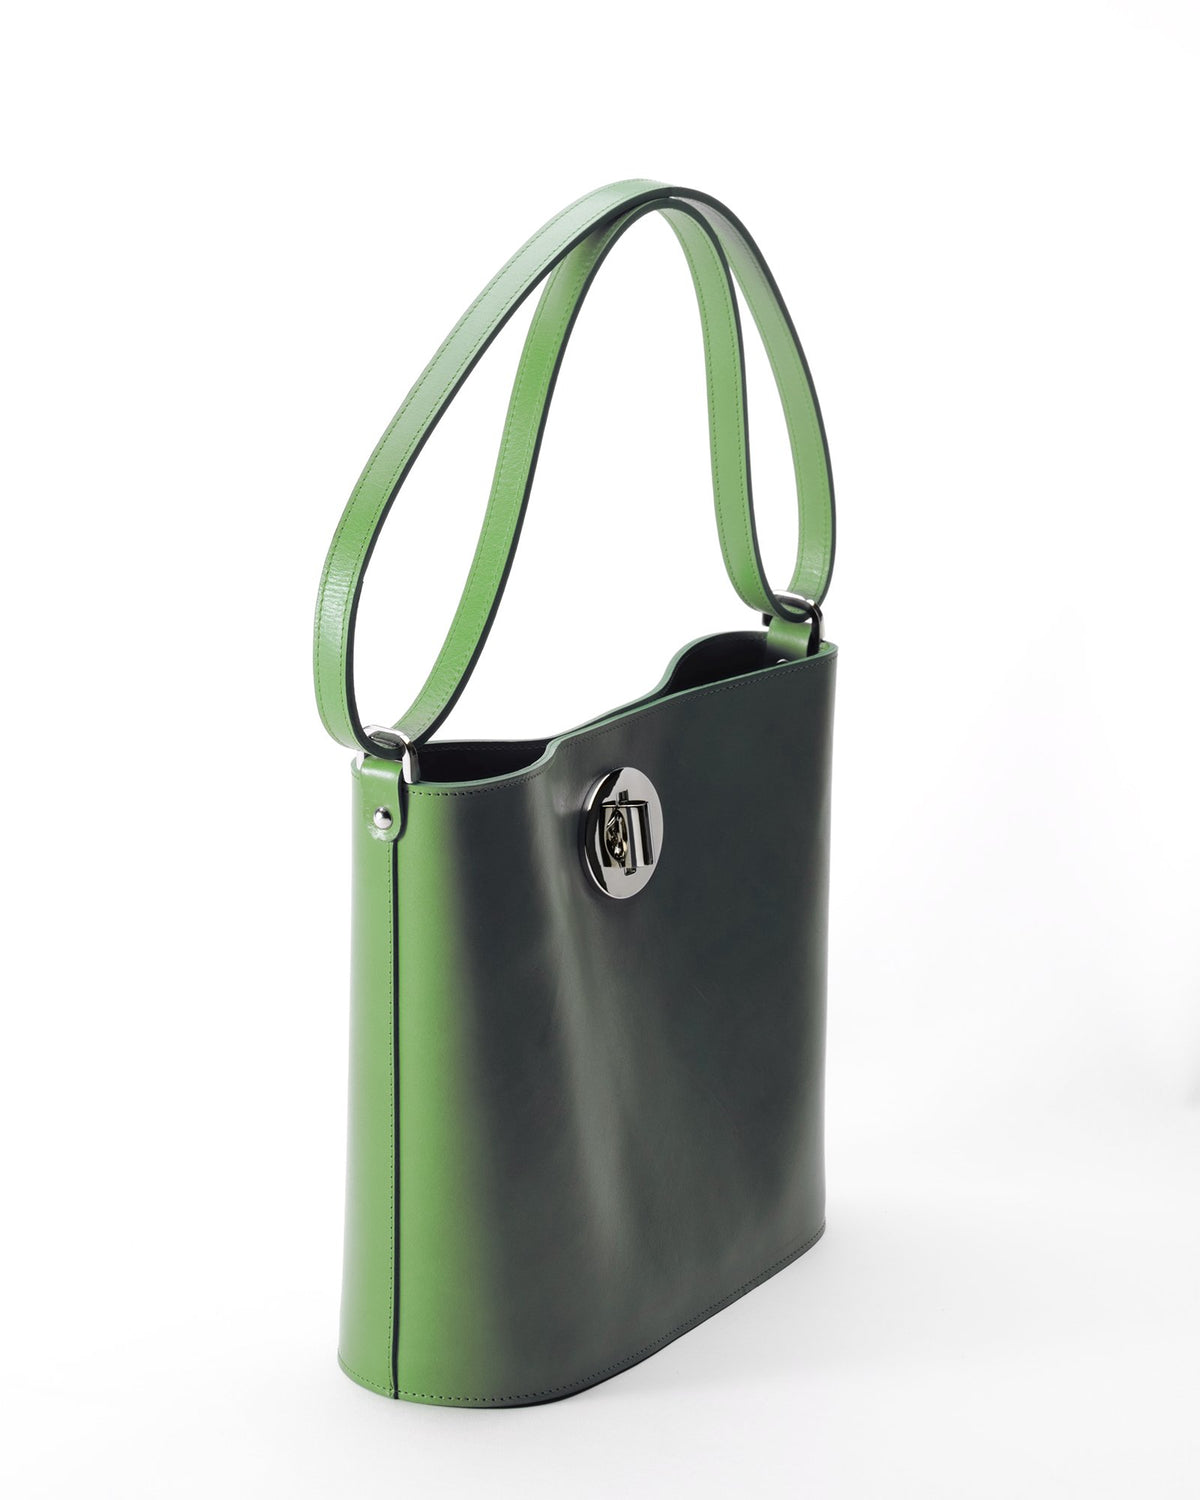 Darlingmax Medium Tote - Green